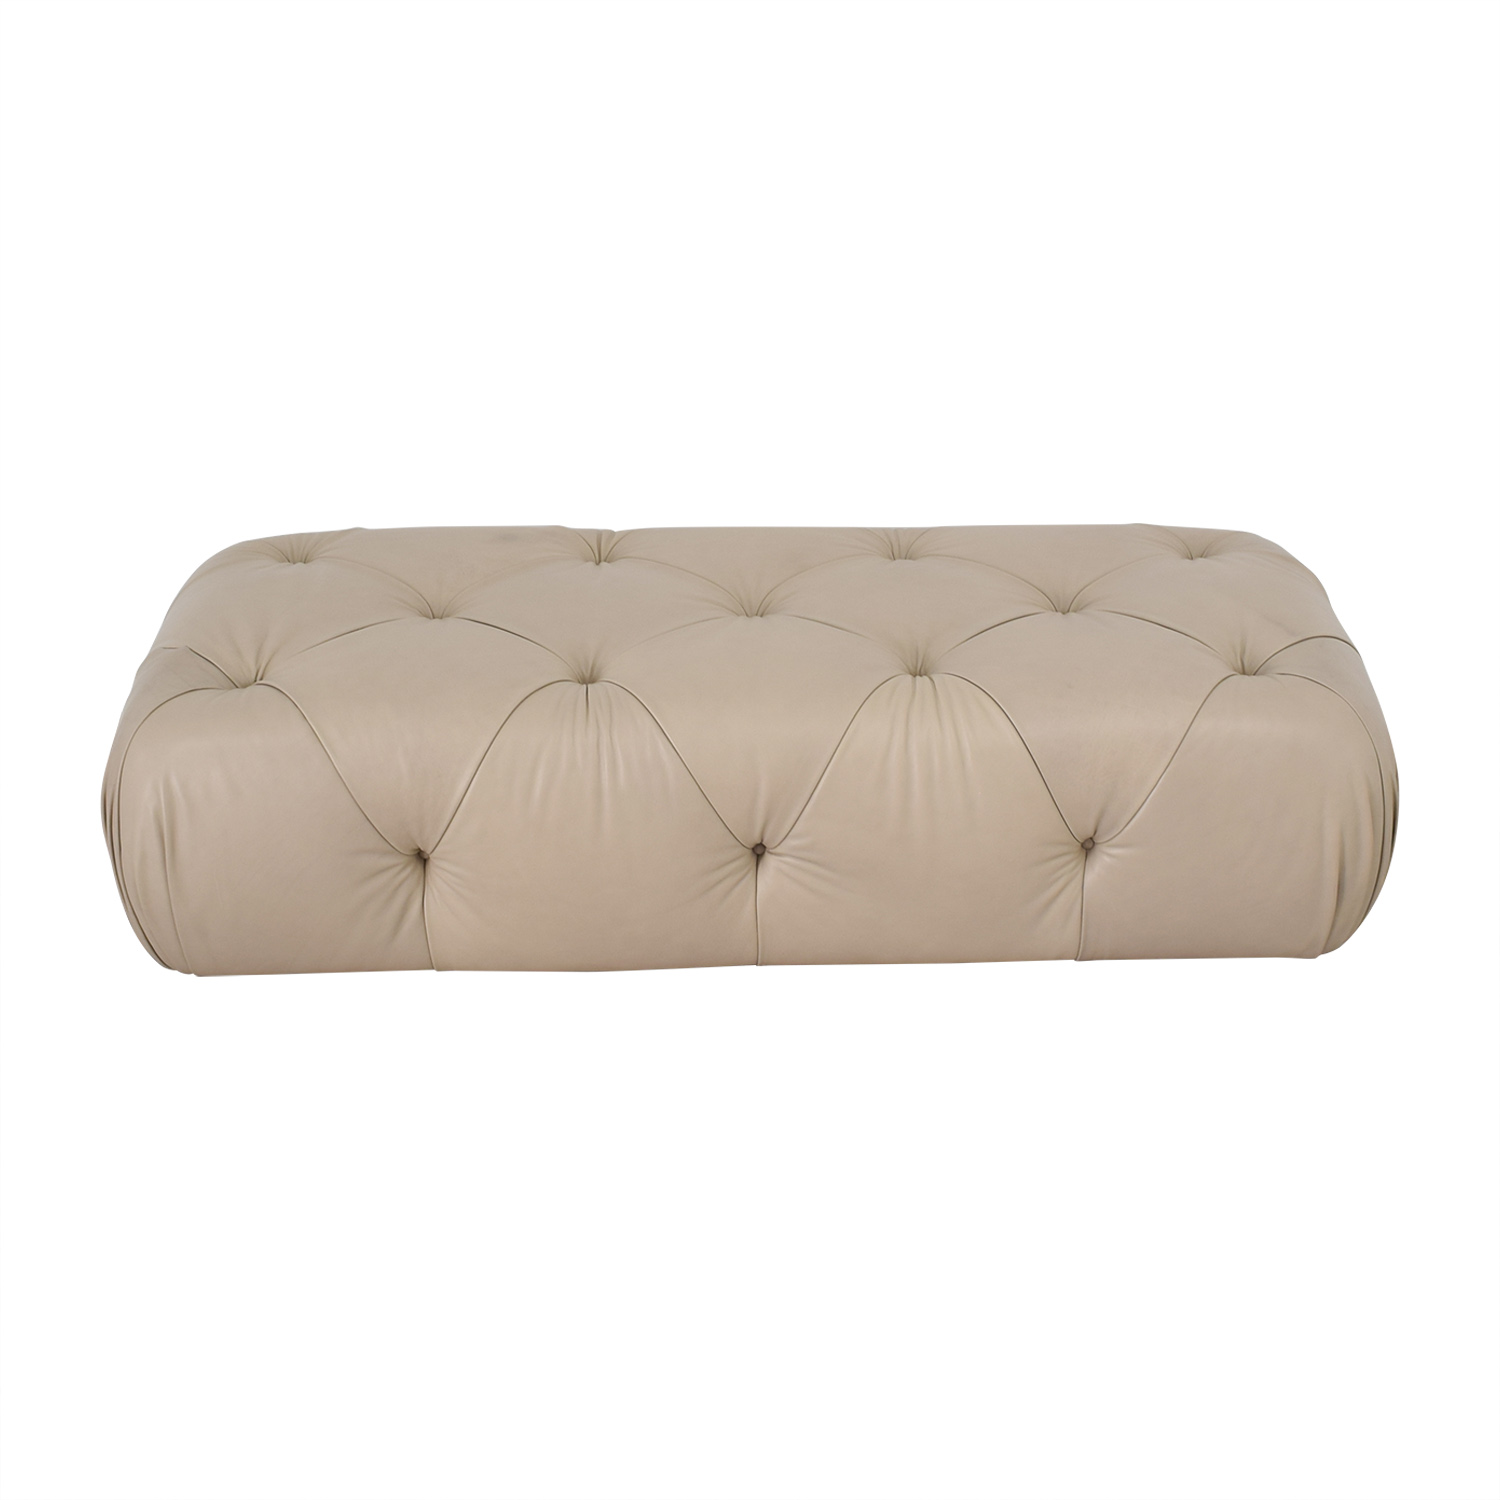 Furniture Masters Furniture Masters Tufted Beige Ottoman for sale